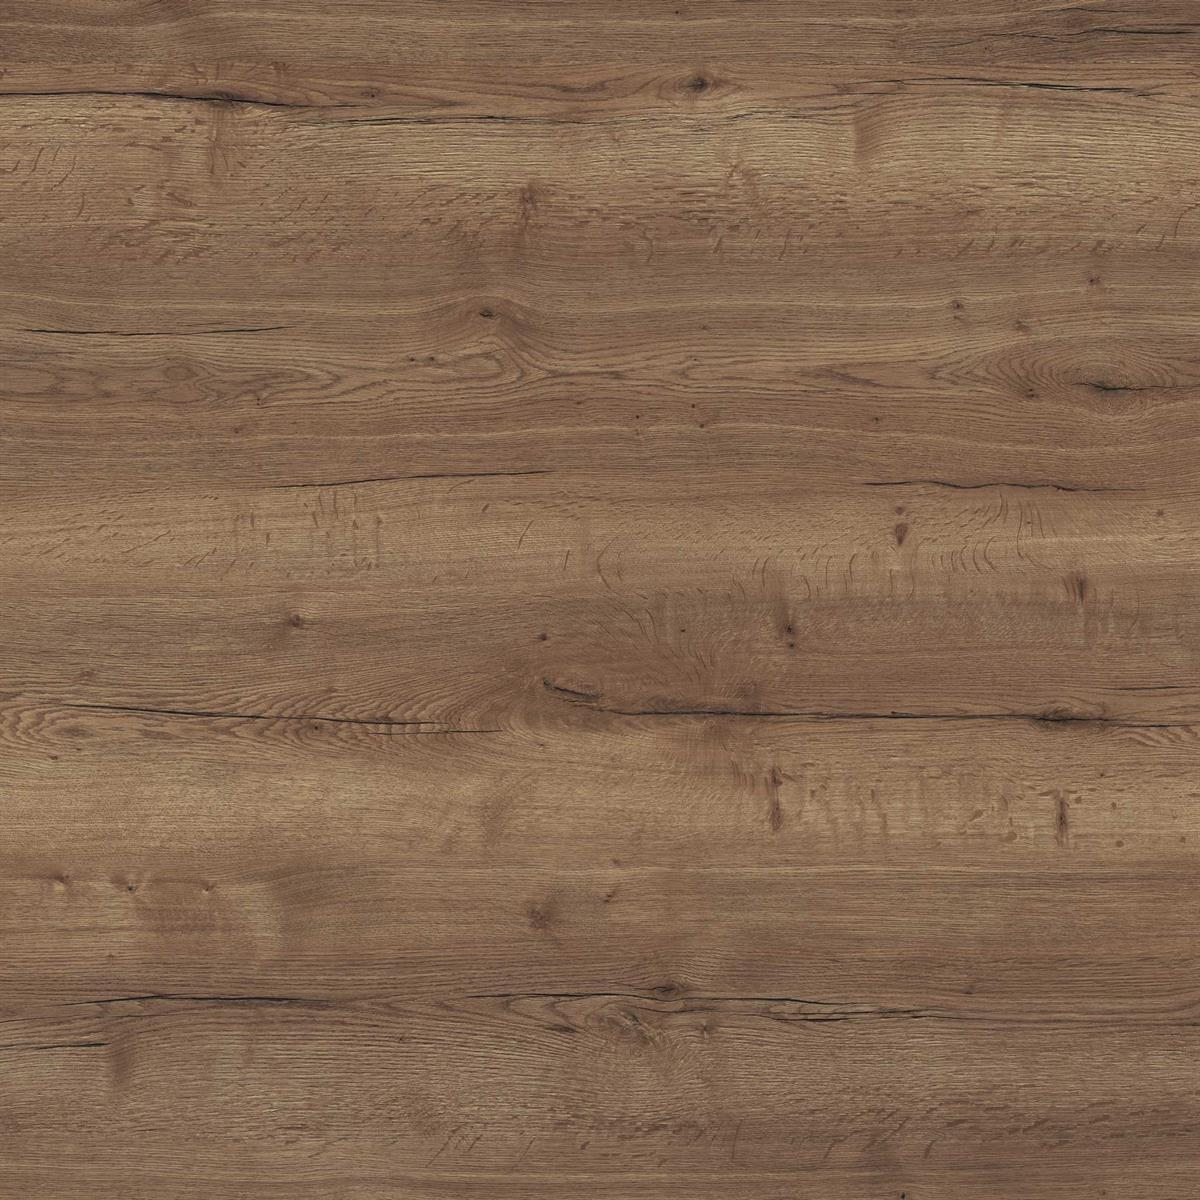 Egger Premium Tobacco Halifax Oak kitchen worktop sample.